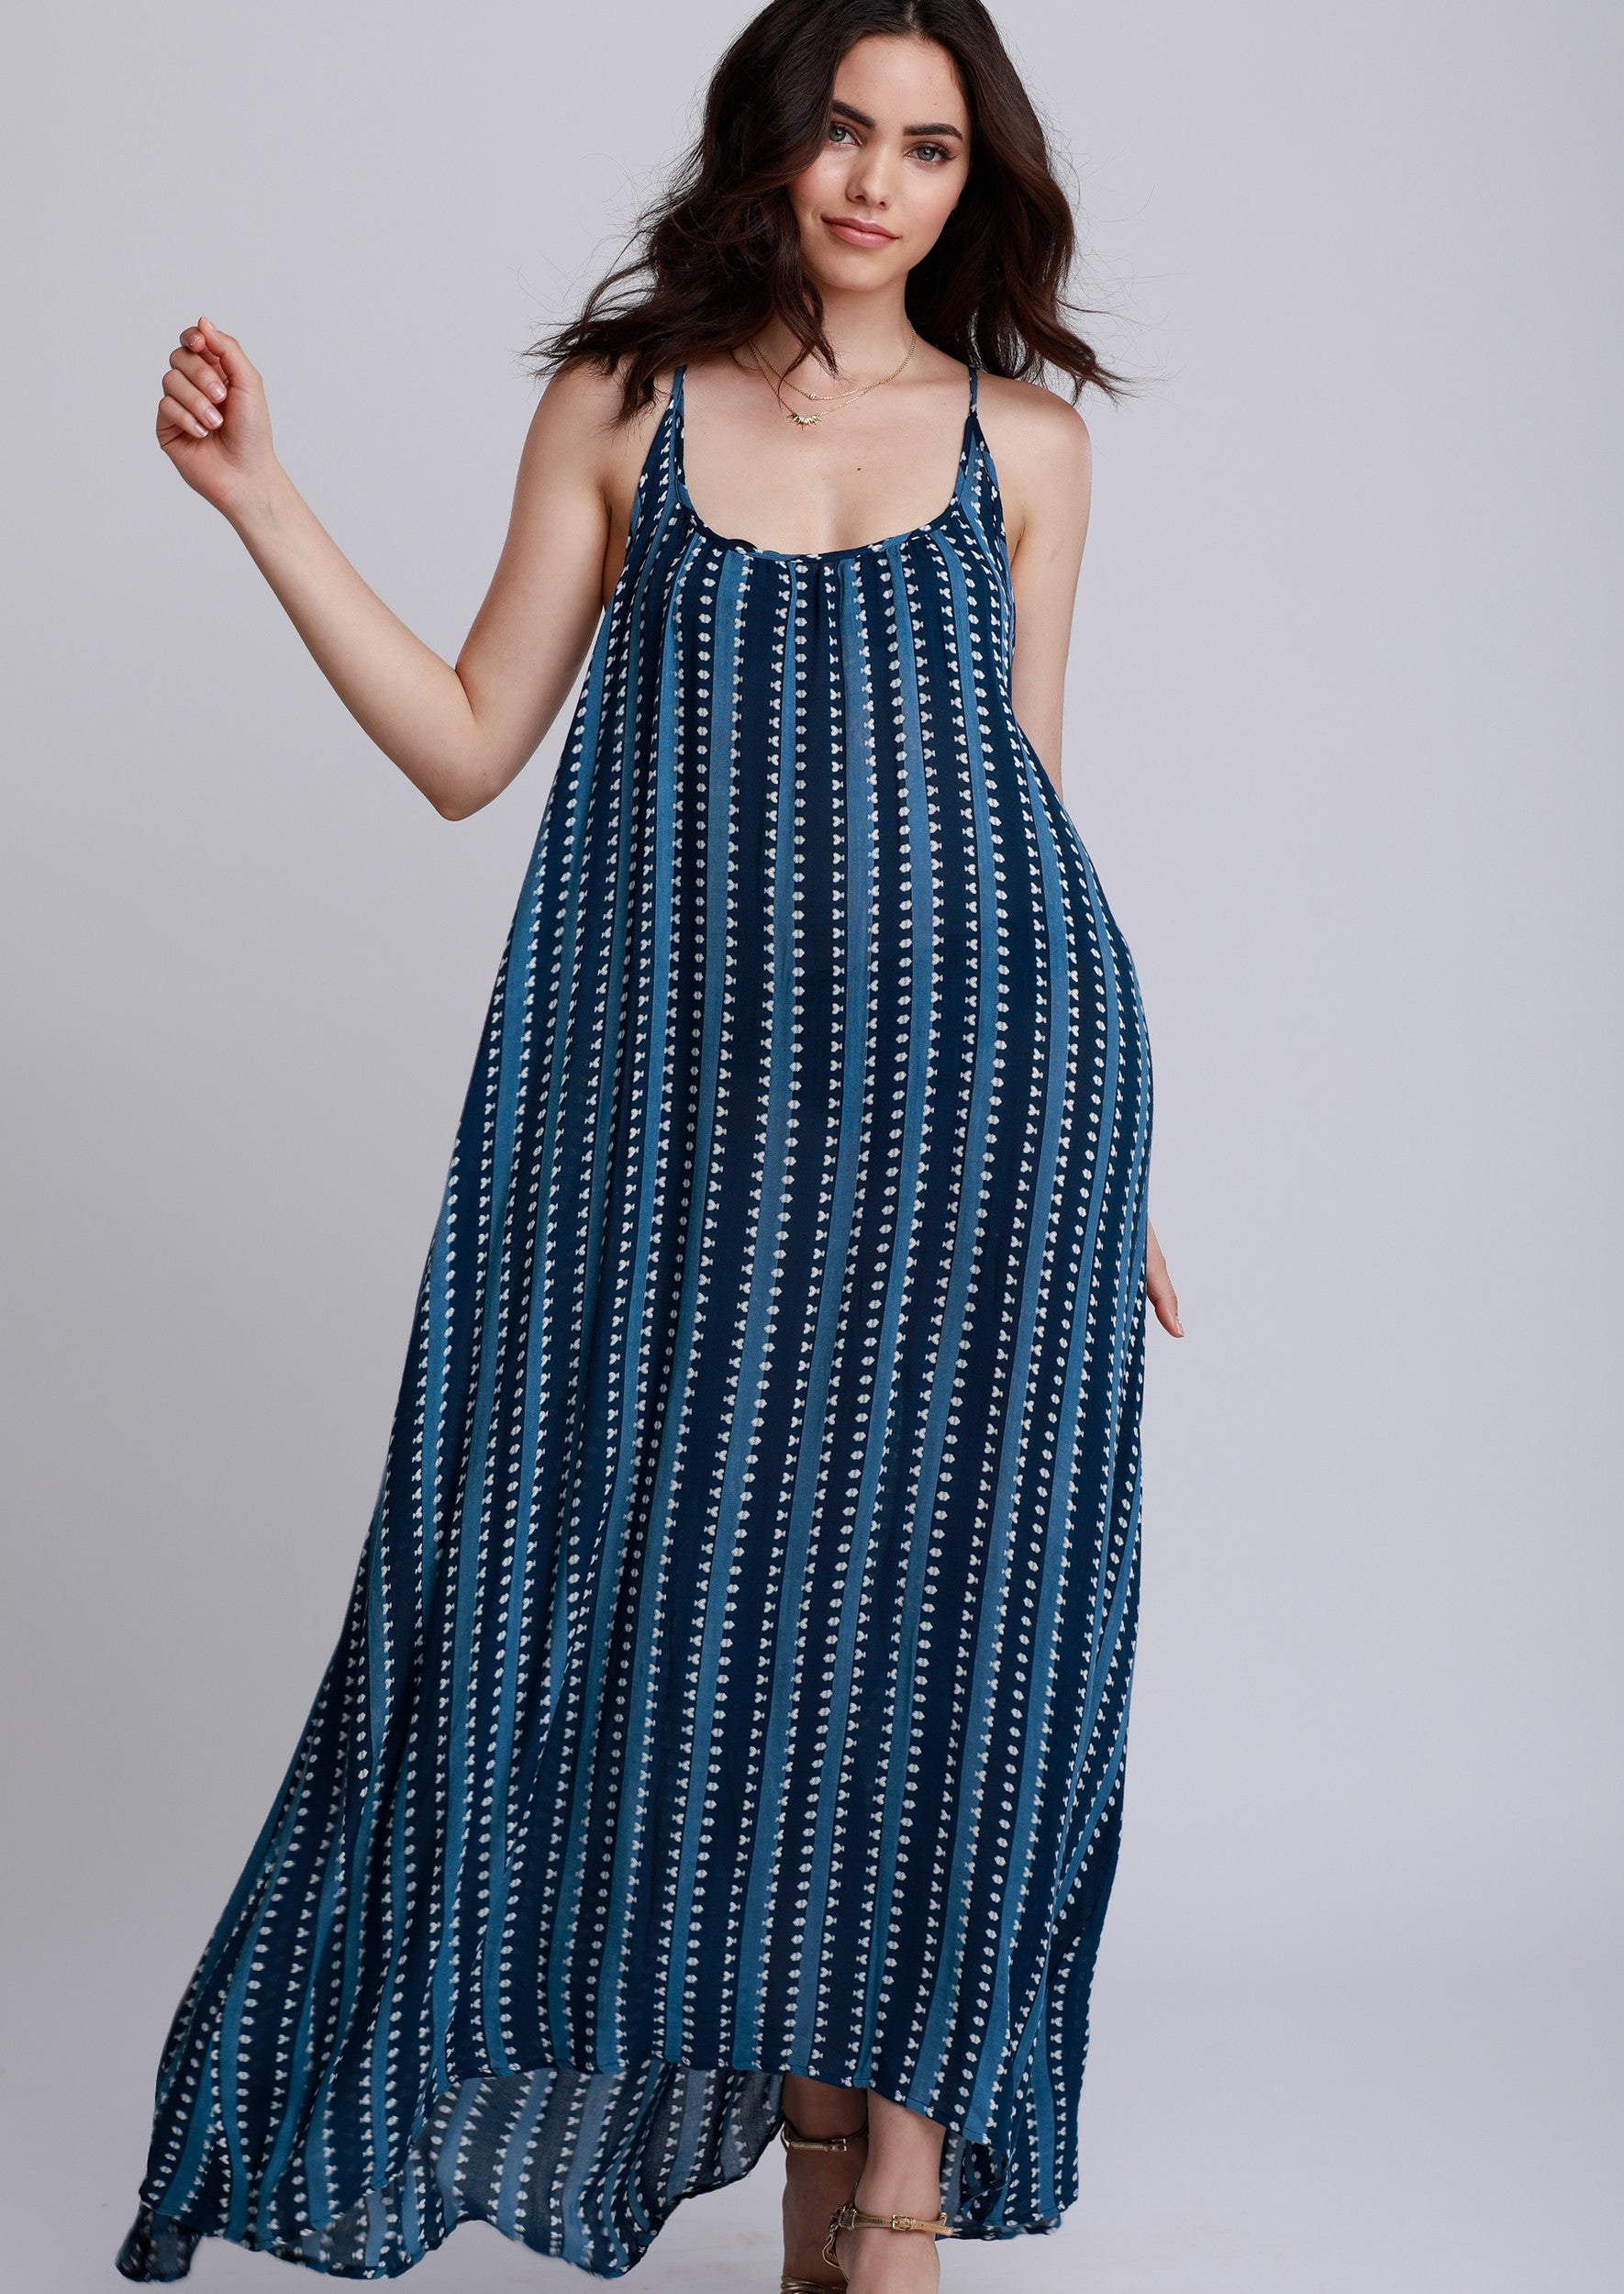 Jules Smith Bohemian Maxi Dress